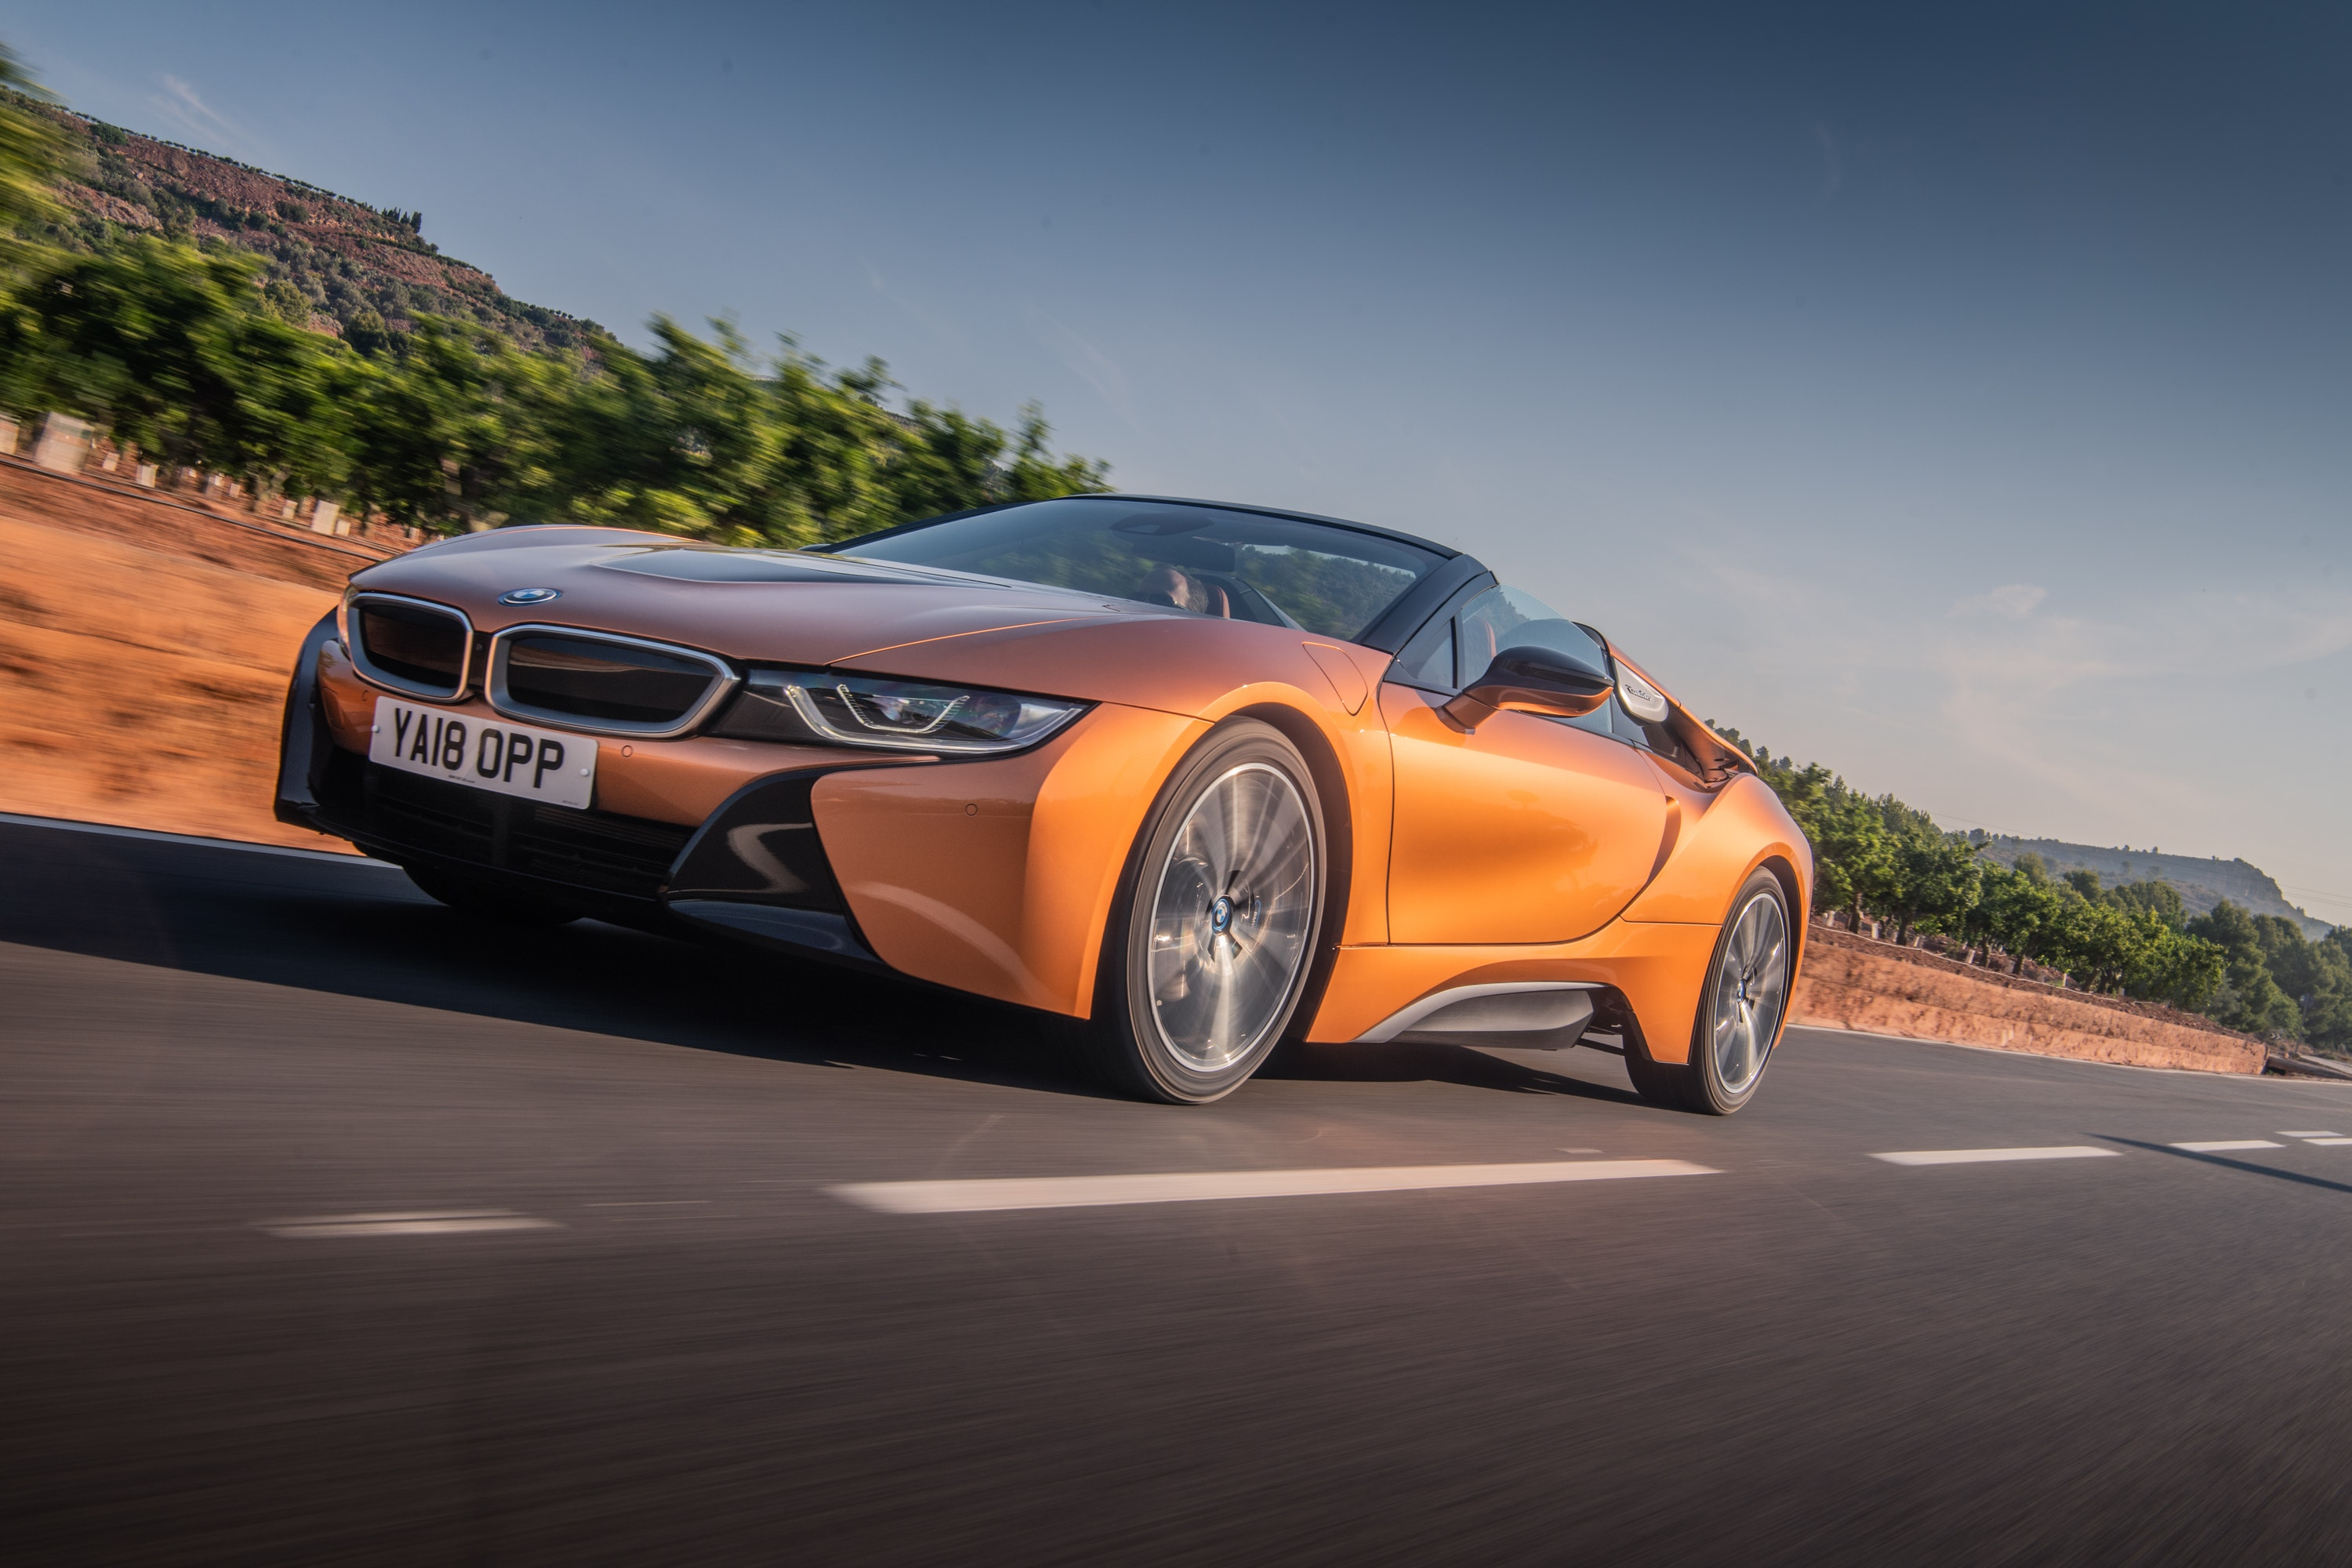 BMW i8 in Orange on the road